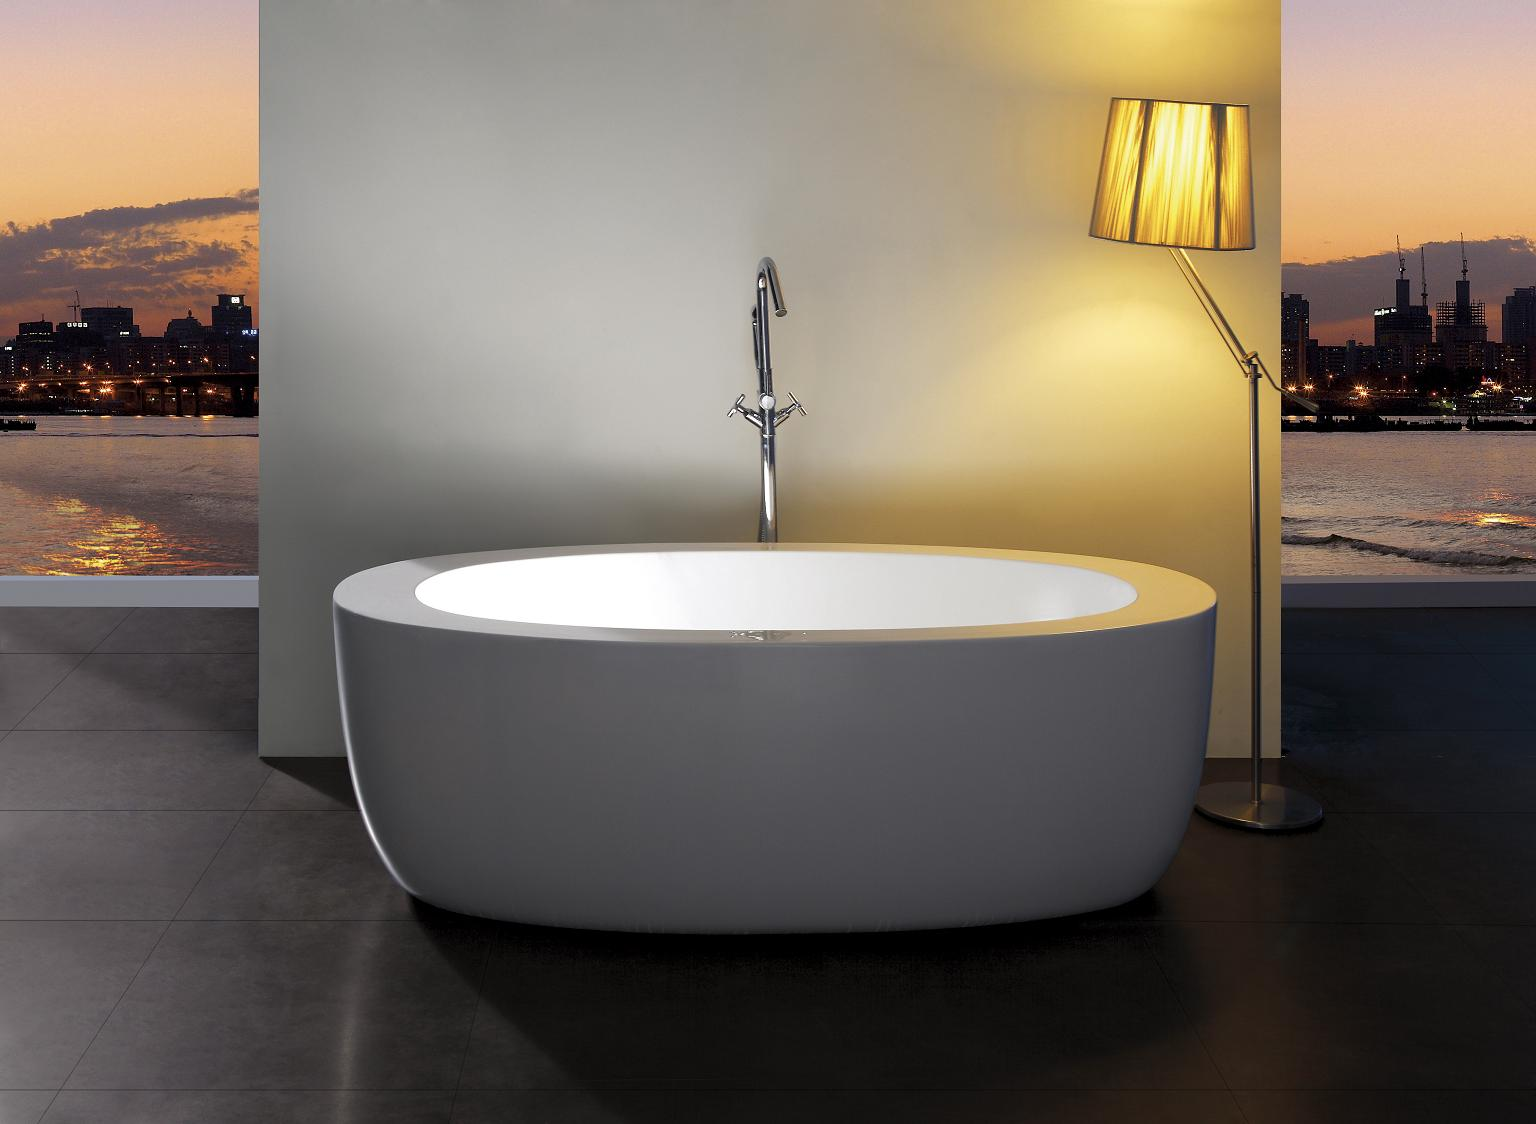 Anatolio acrylic modern freestanding soaking bathtub 69 for Acrylic soaker tub